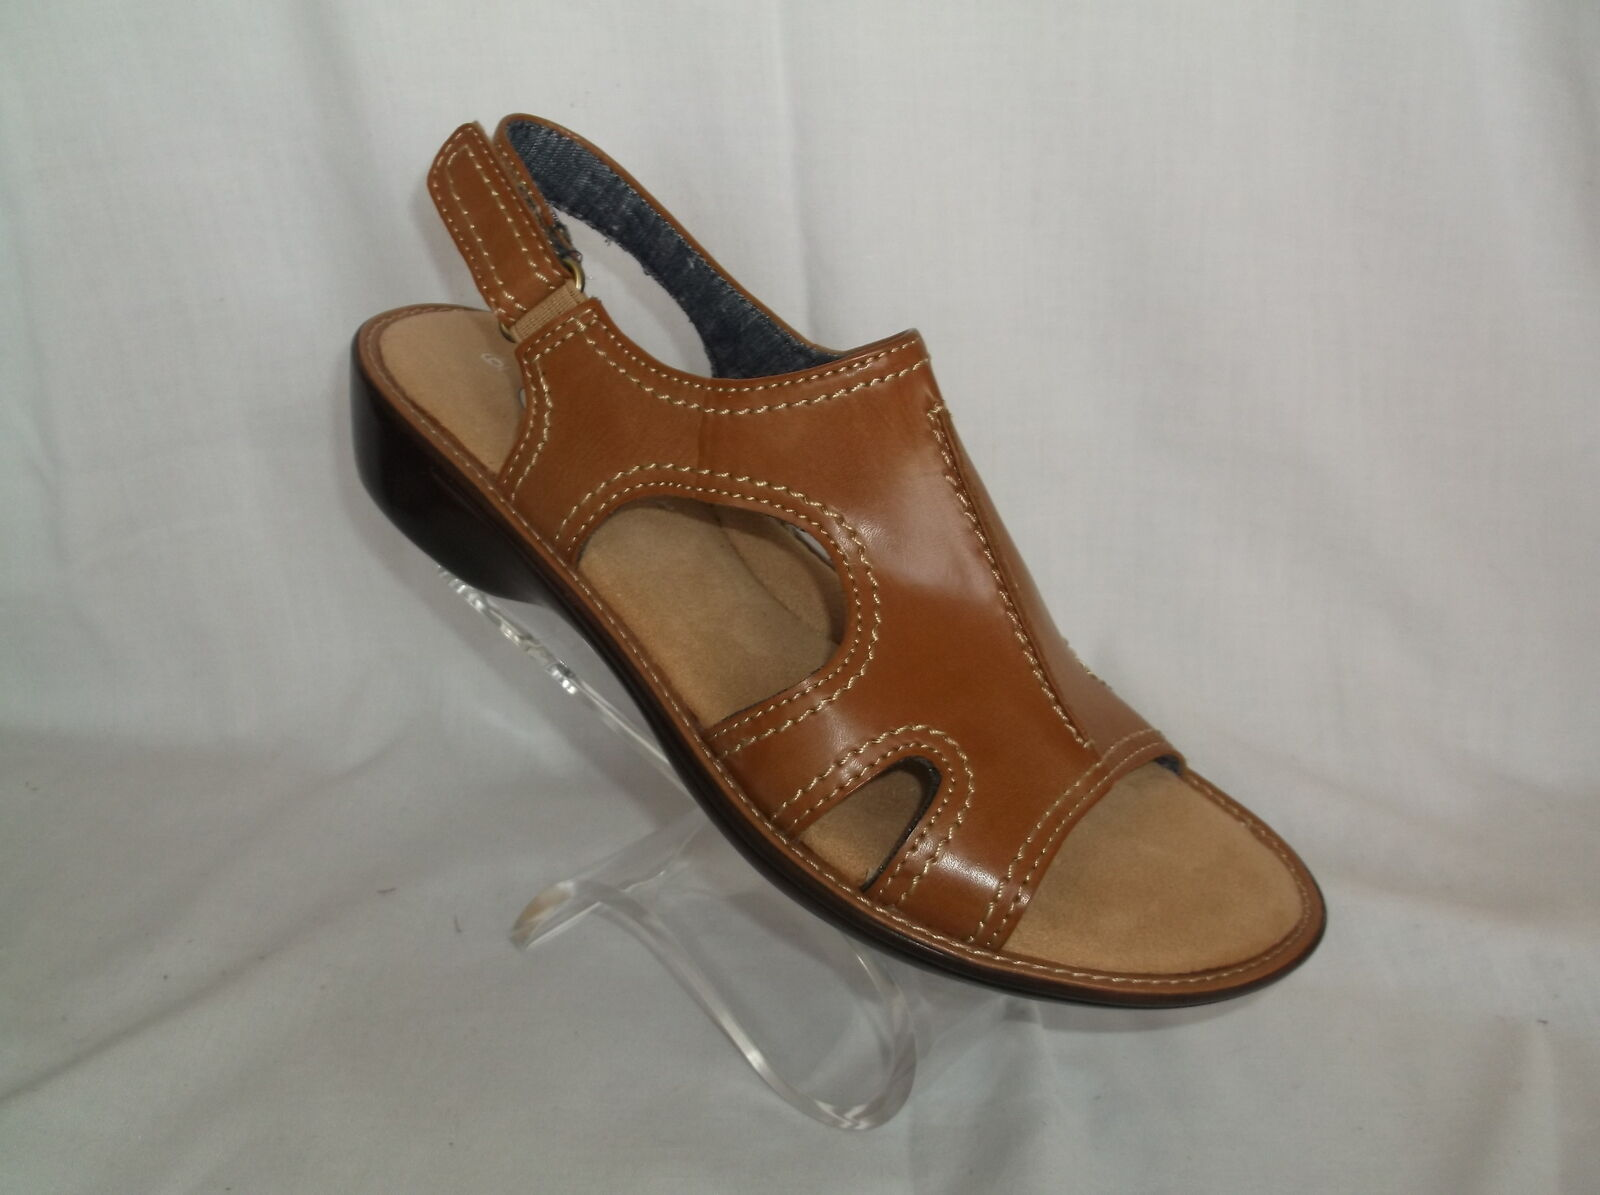 DR SCHOLL'S (ANNALEZA) TAN TOUCH CLOSURE IN PADDED FOOTBED SANDAL NEW IN CLOSURE BOX 204d00